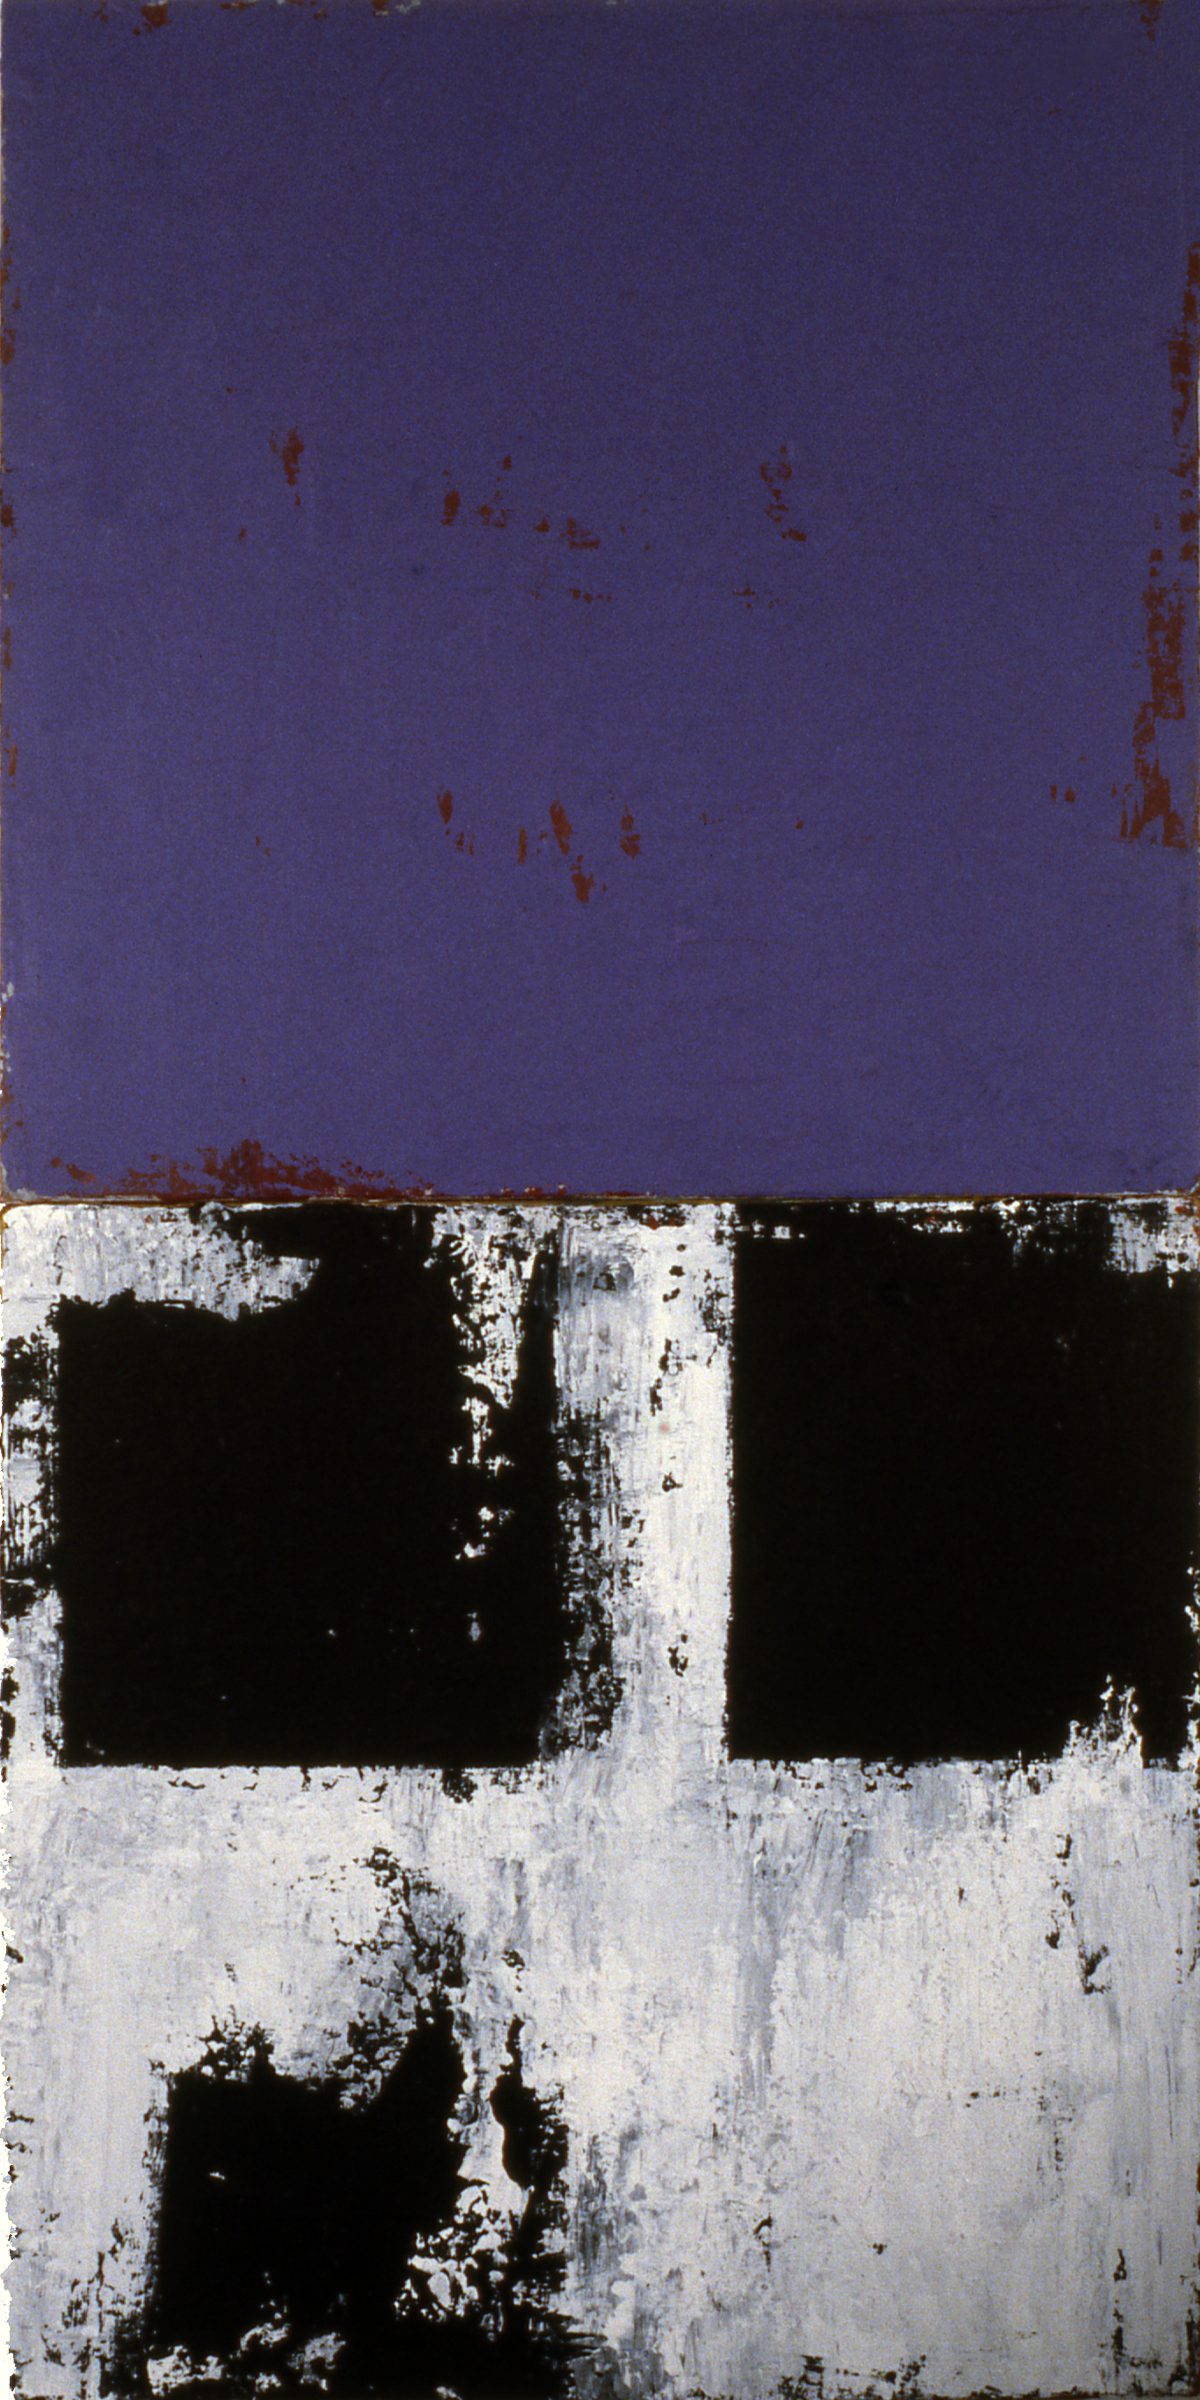 Quattro, 1991, Acrylic on canvas over panels, 24 x 12 inches.